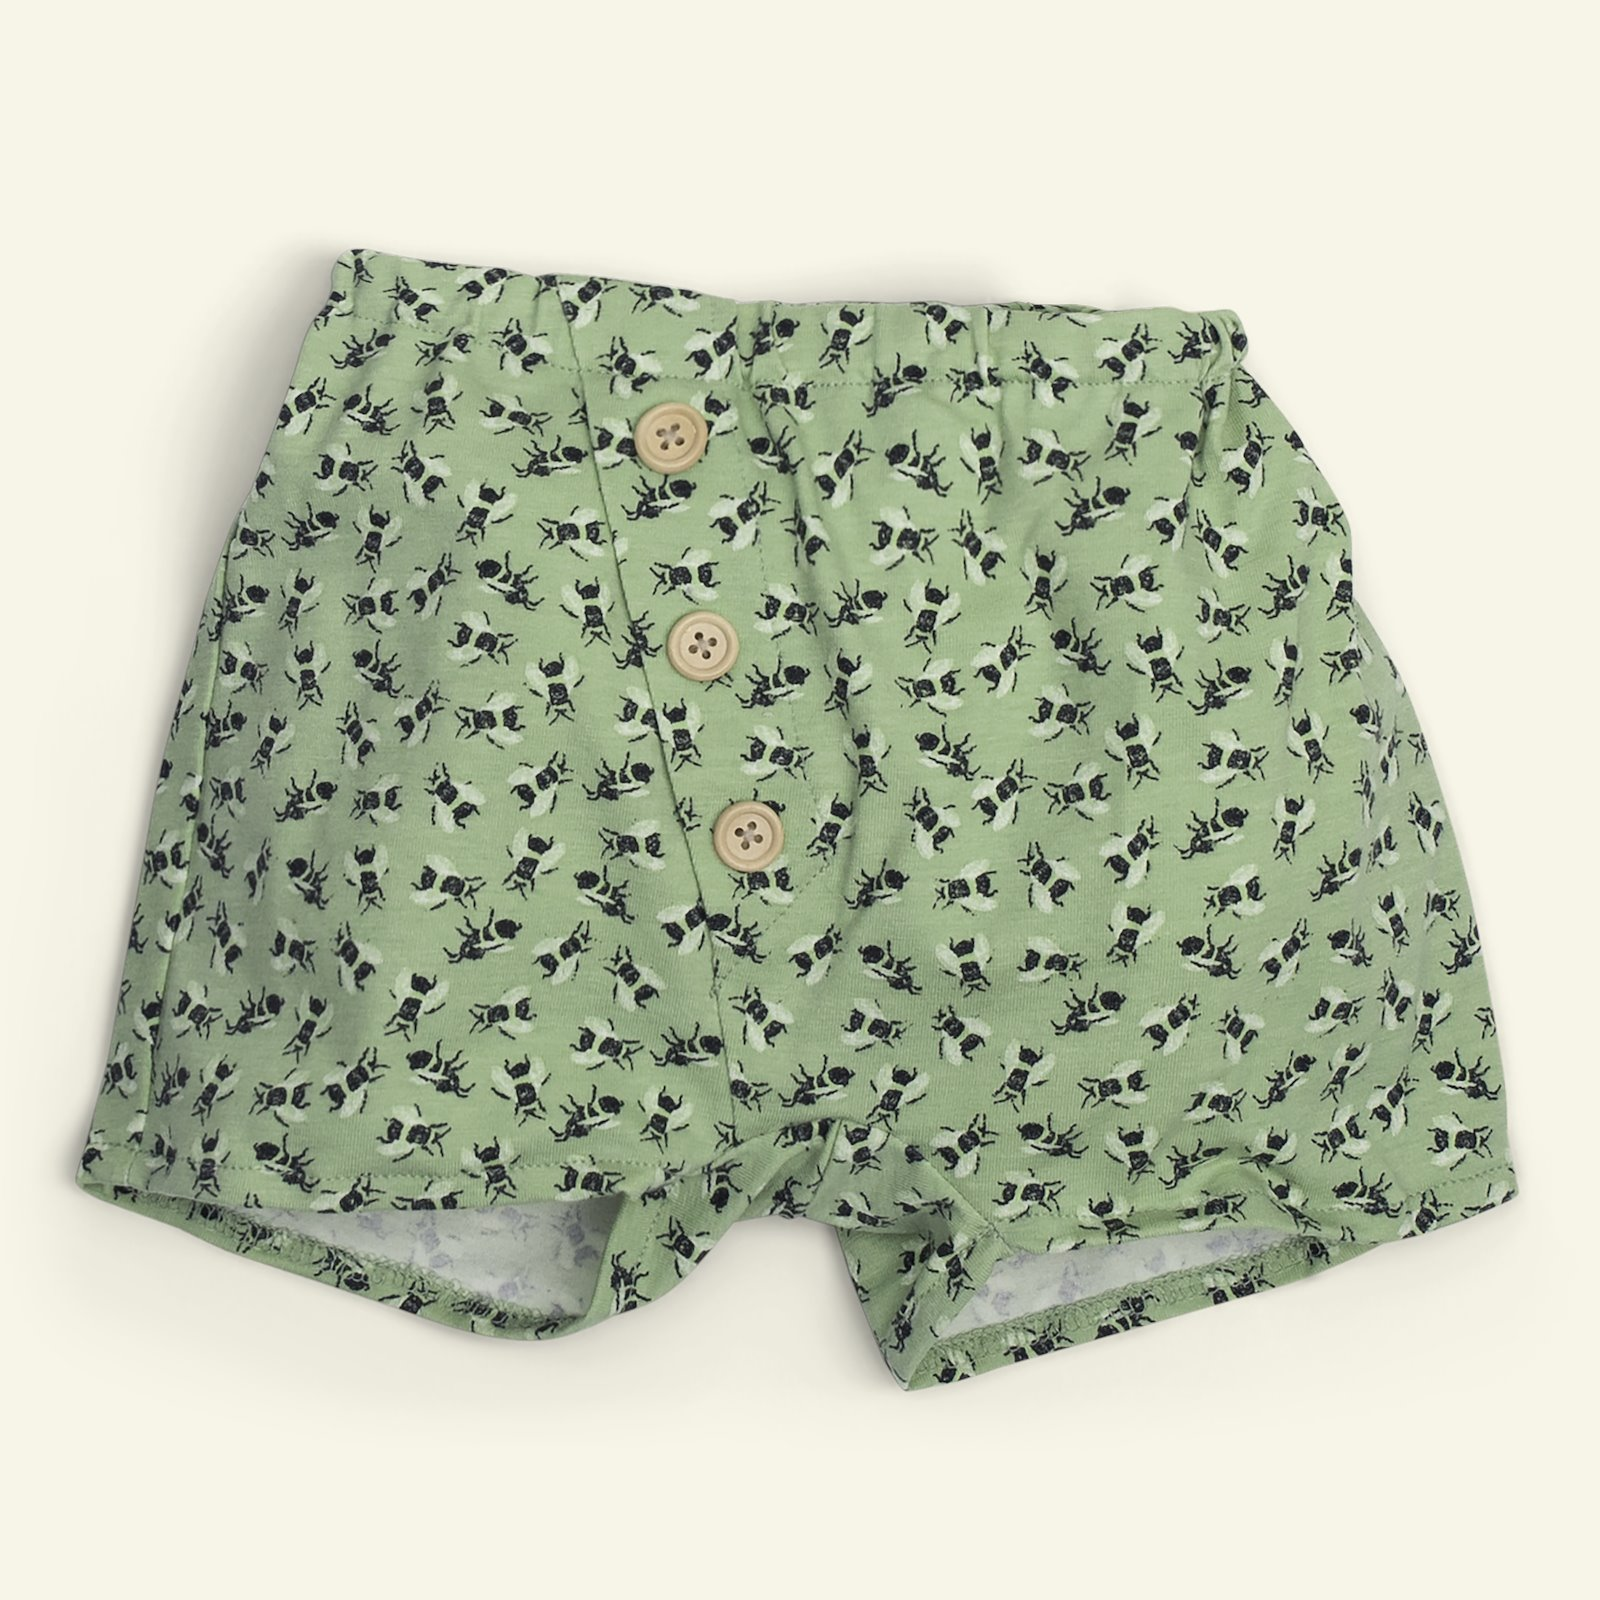 Trousers and shorts, 68/6m p80008_272731_33504_sskit